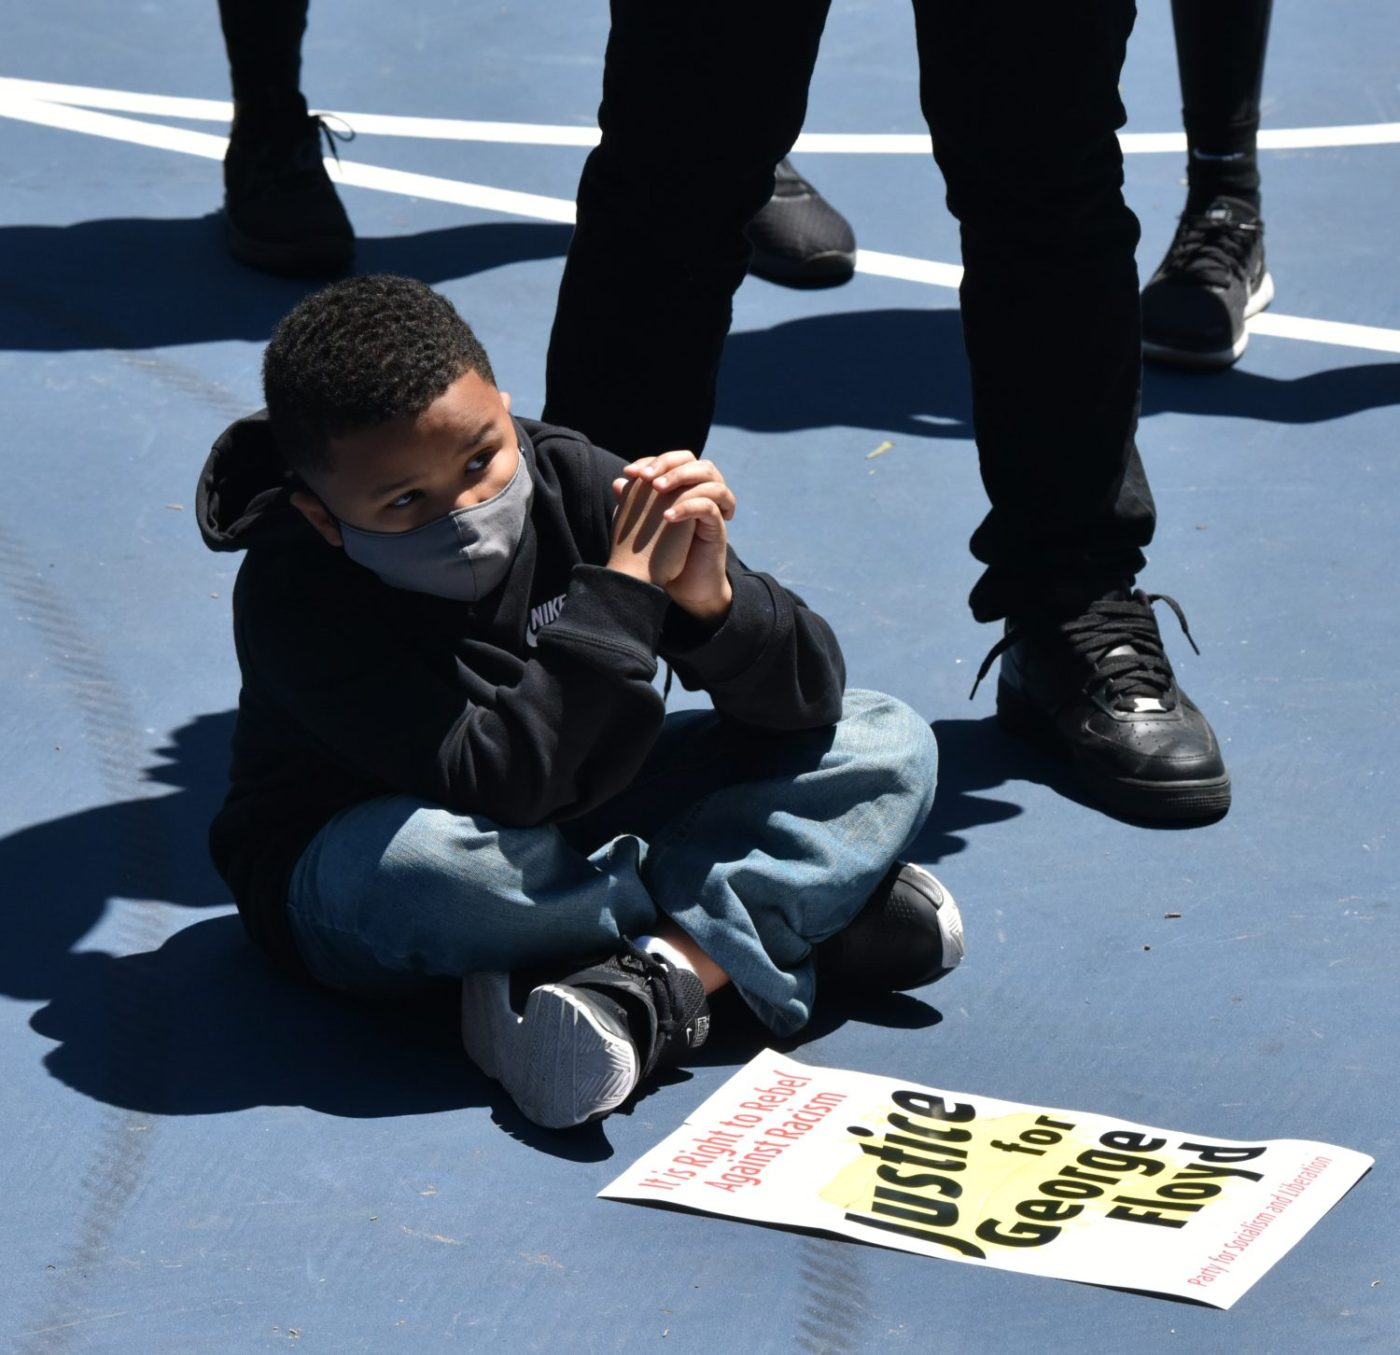 Lil-Black-boy-sits-on-pavement-at-rally-w-Justice-for-George-Floyd-sign-2020-by-Johnnie-Burrell-1400x1355, Advocacy without results is dead, National News & Views